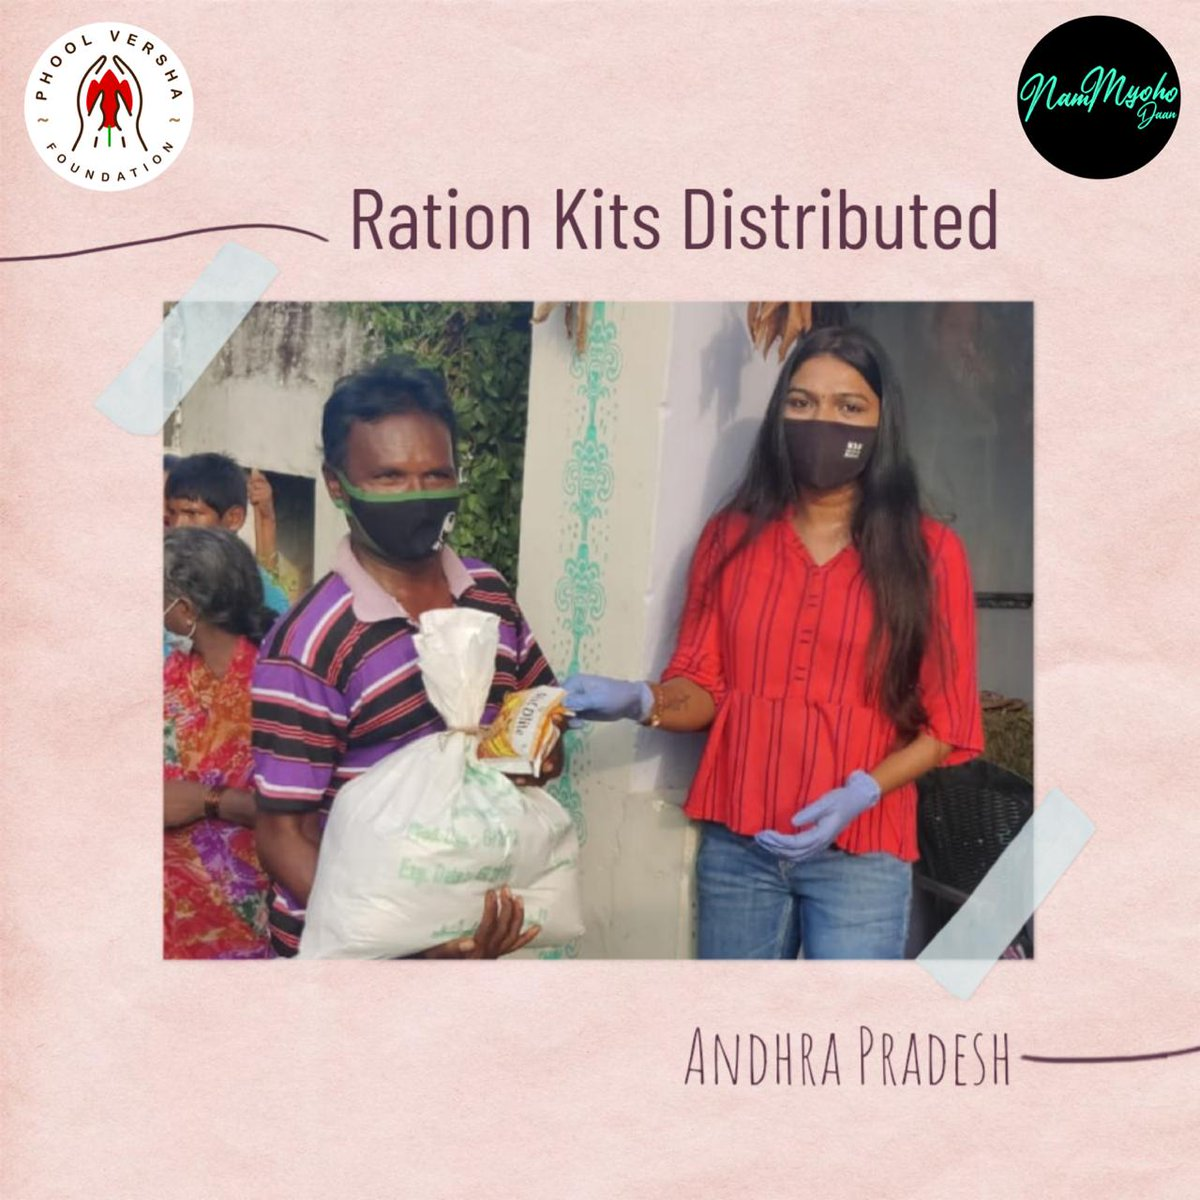 One of the best feelings in the world is giving. With just one act of kindness, you can inspire others to go out and plant seeds of happiness through giving, too. It's your kindness that recently we had the pleasure of distributing ration kits in Andhra Pradesh. Keep Donating!!